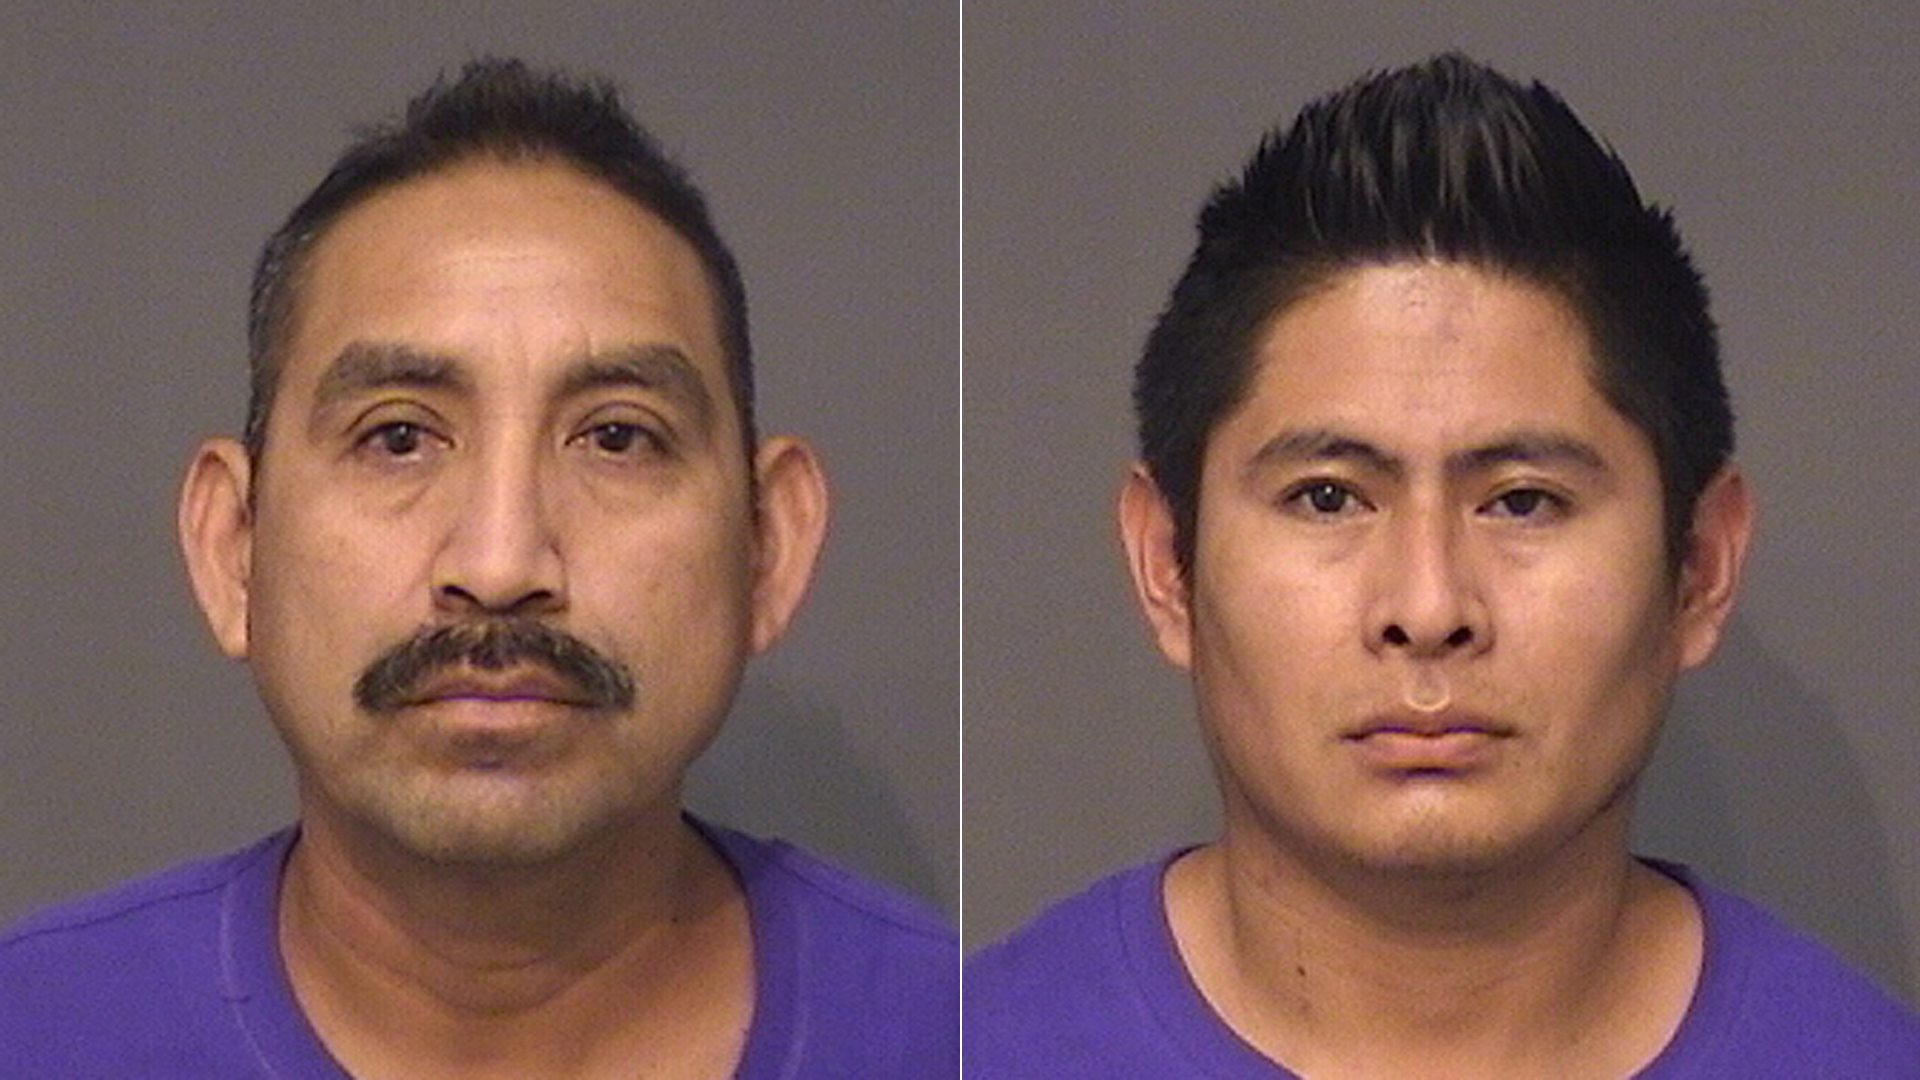 Florentino Bacilio (left) and Angel Evaristo are shown in photos released by the Huntington Beach Police Department on June 10, 2021.